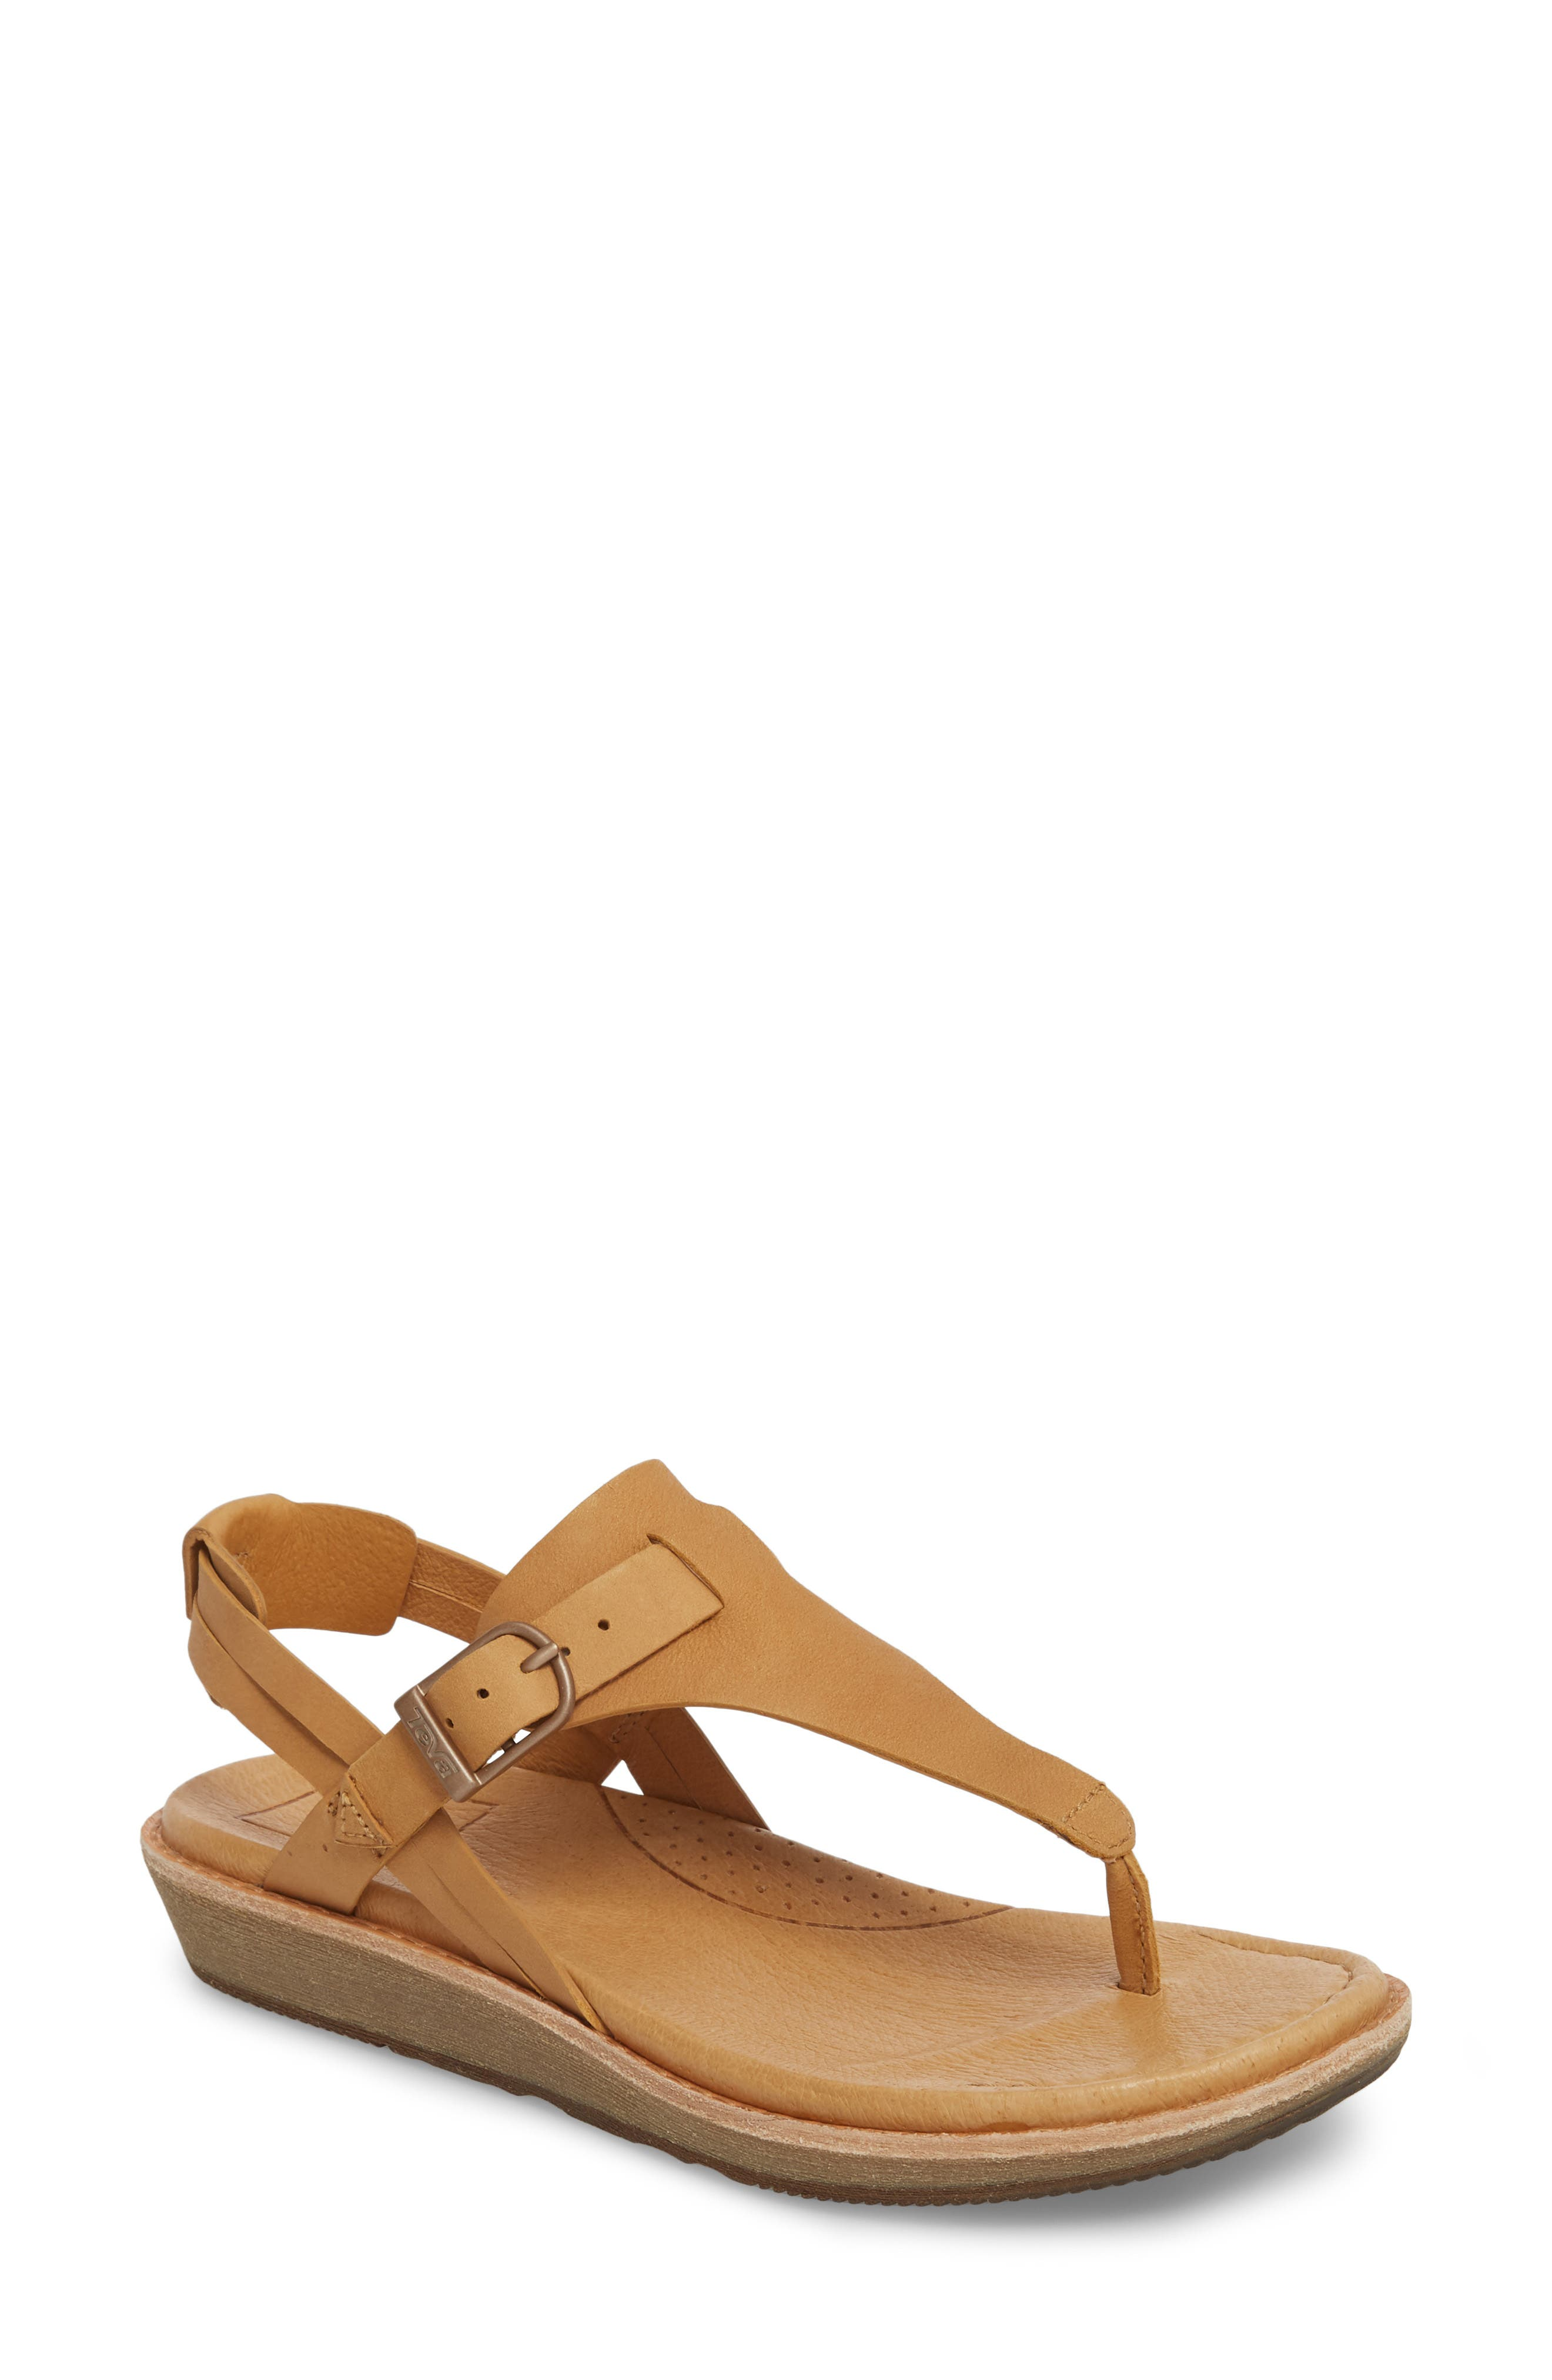 83574b46c65 Teva T-Strap Sandals for Women